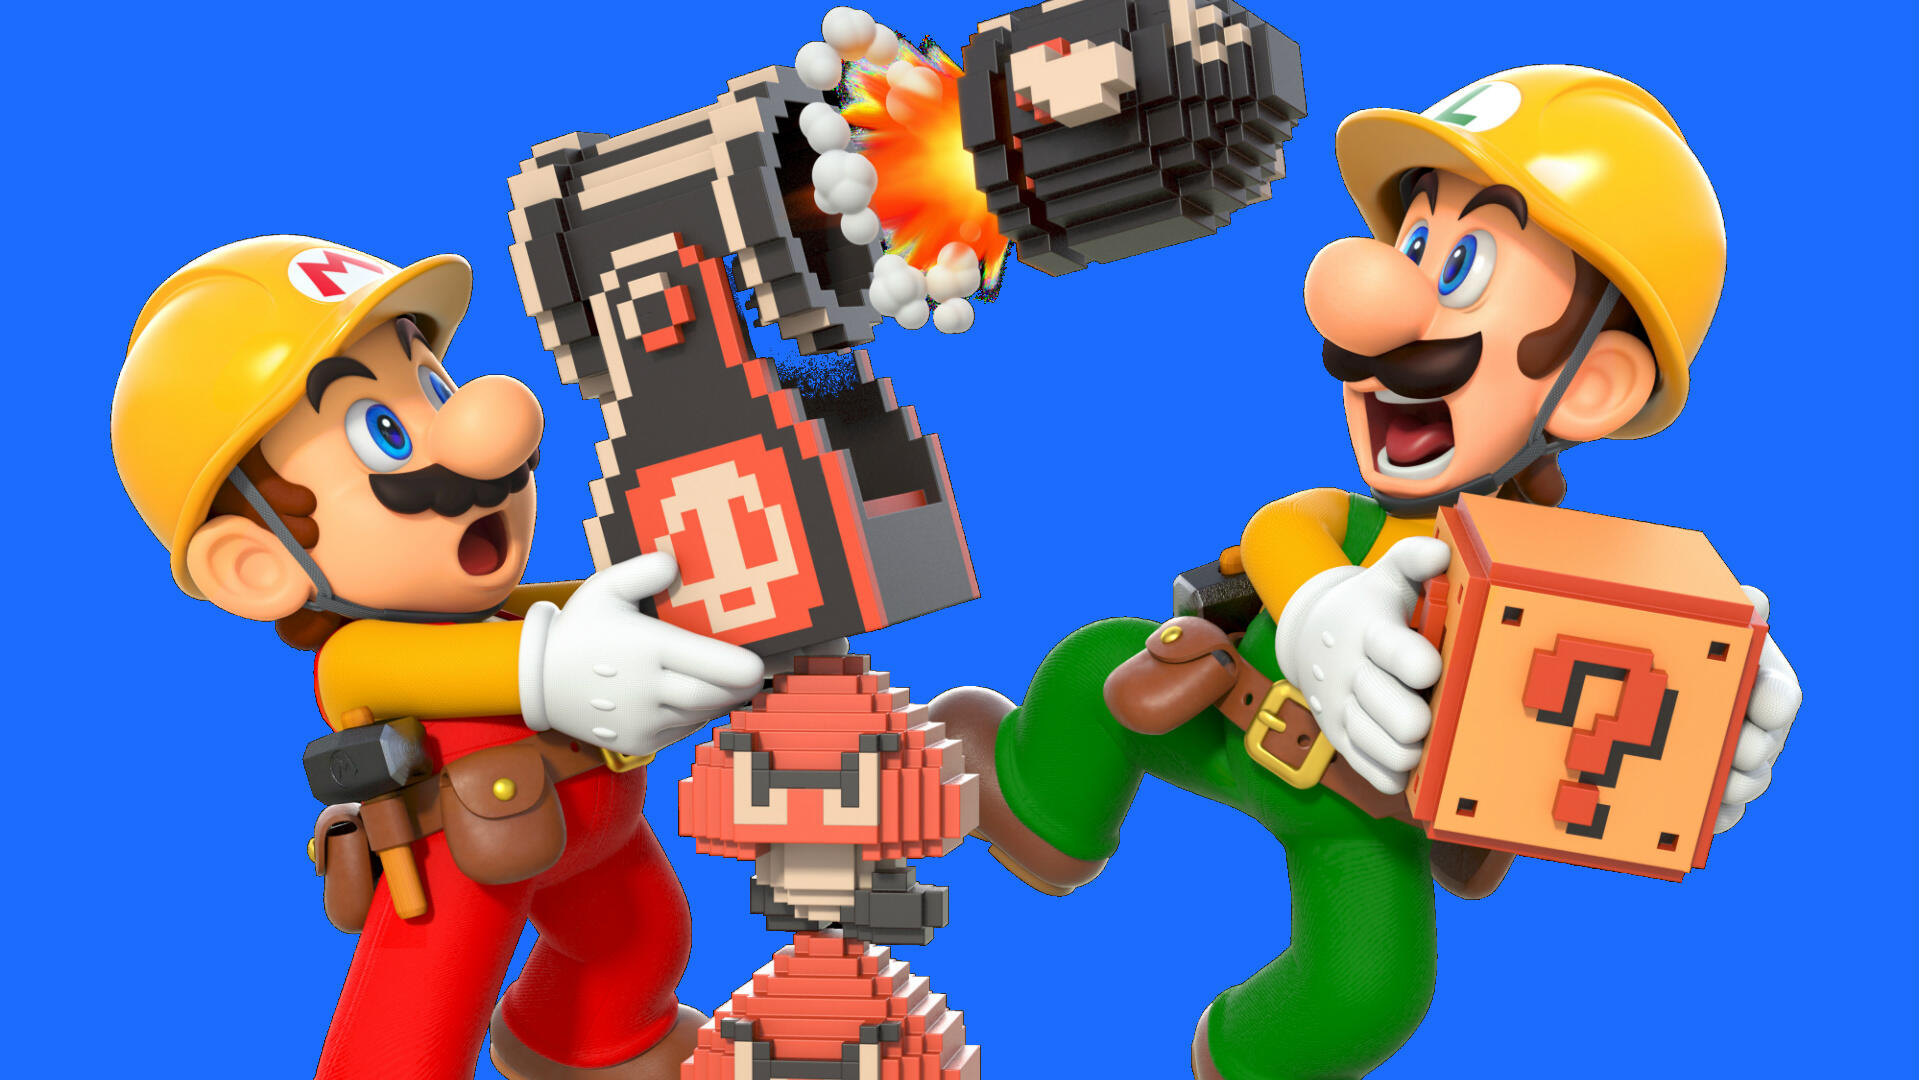 You Have to Unlock the Night Theme in Super Mario Maker 2